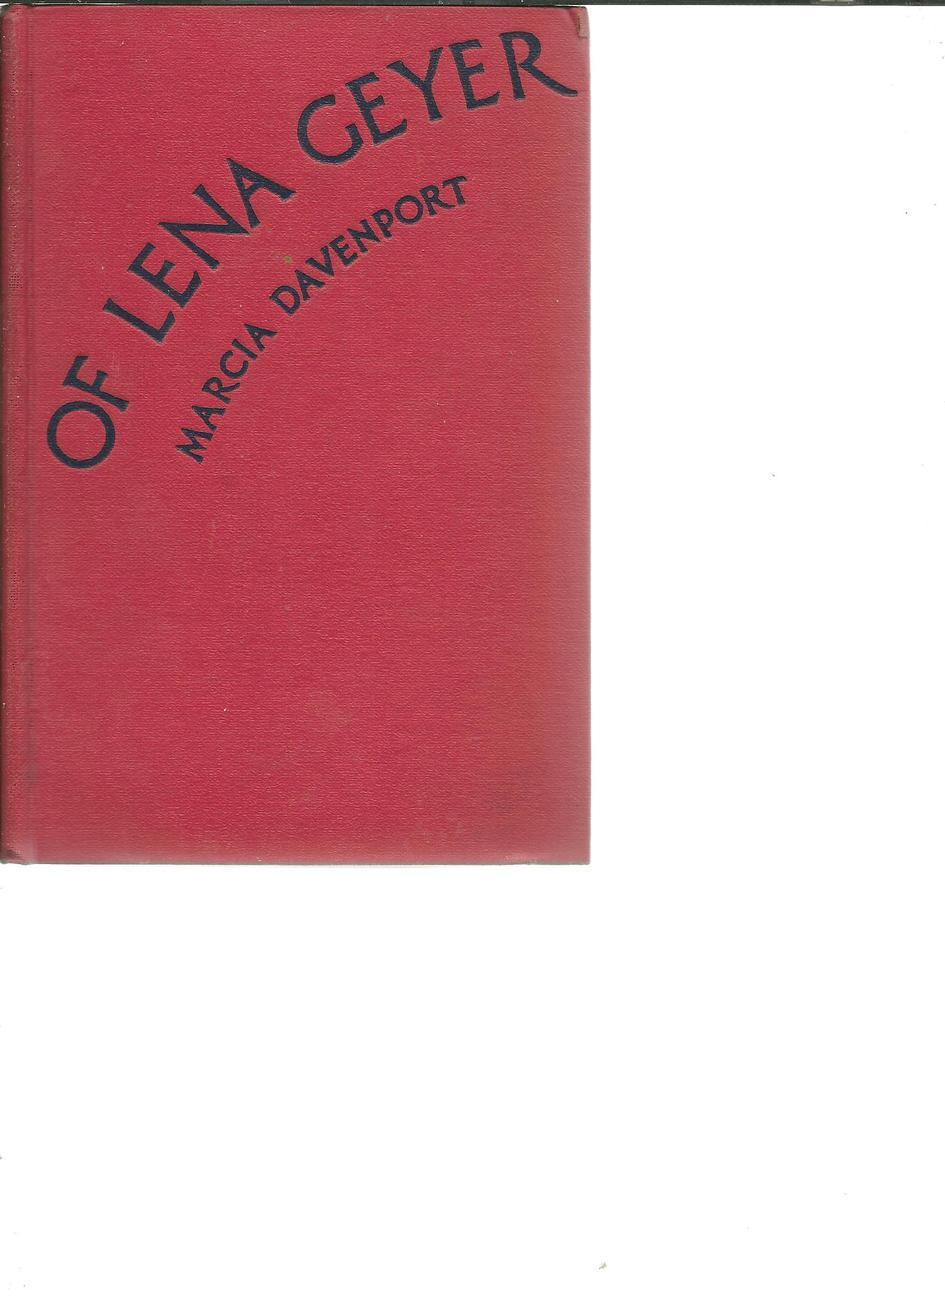 Of Lena Geyer  Marcia Davenport hardcover 1936